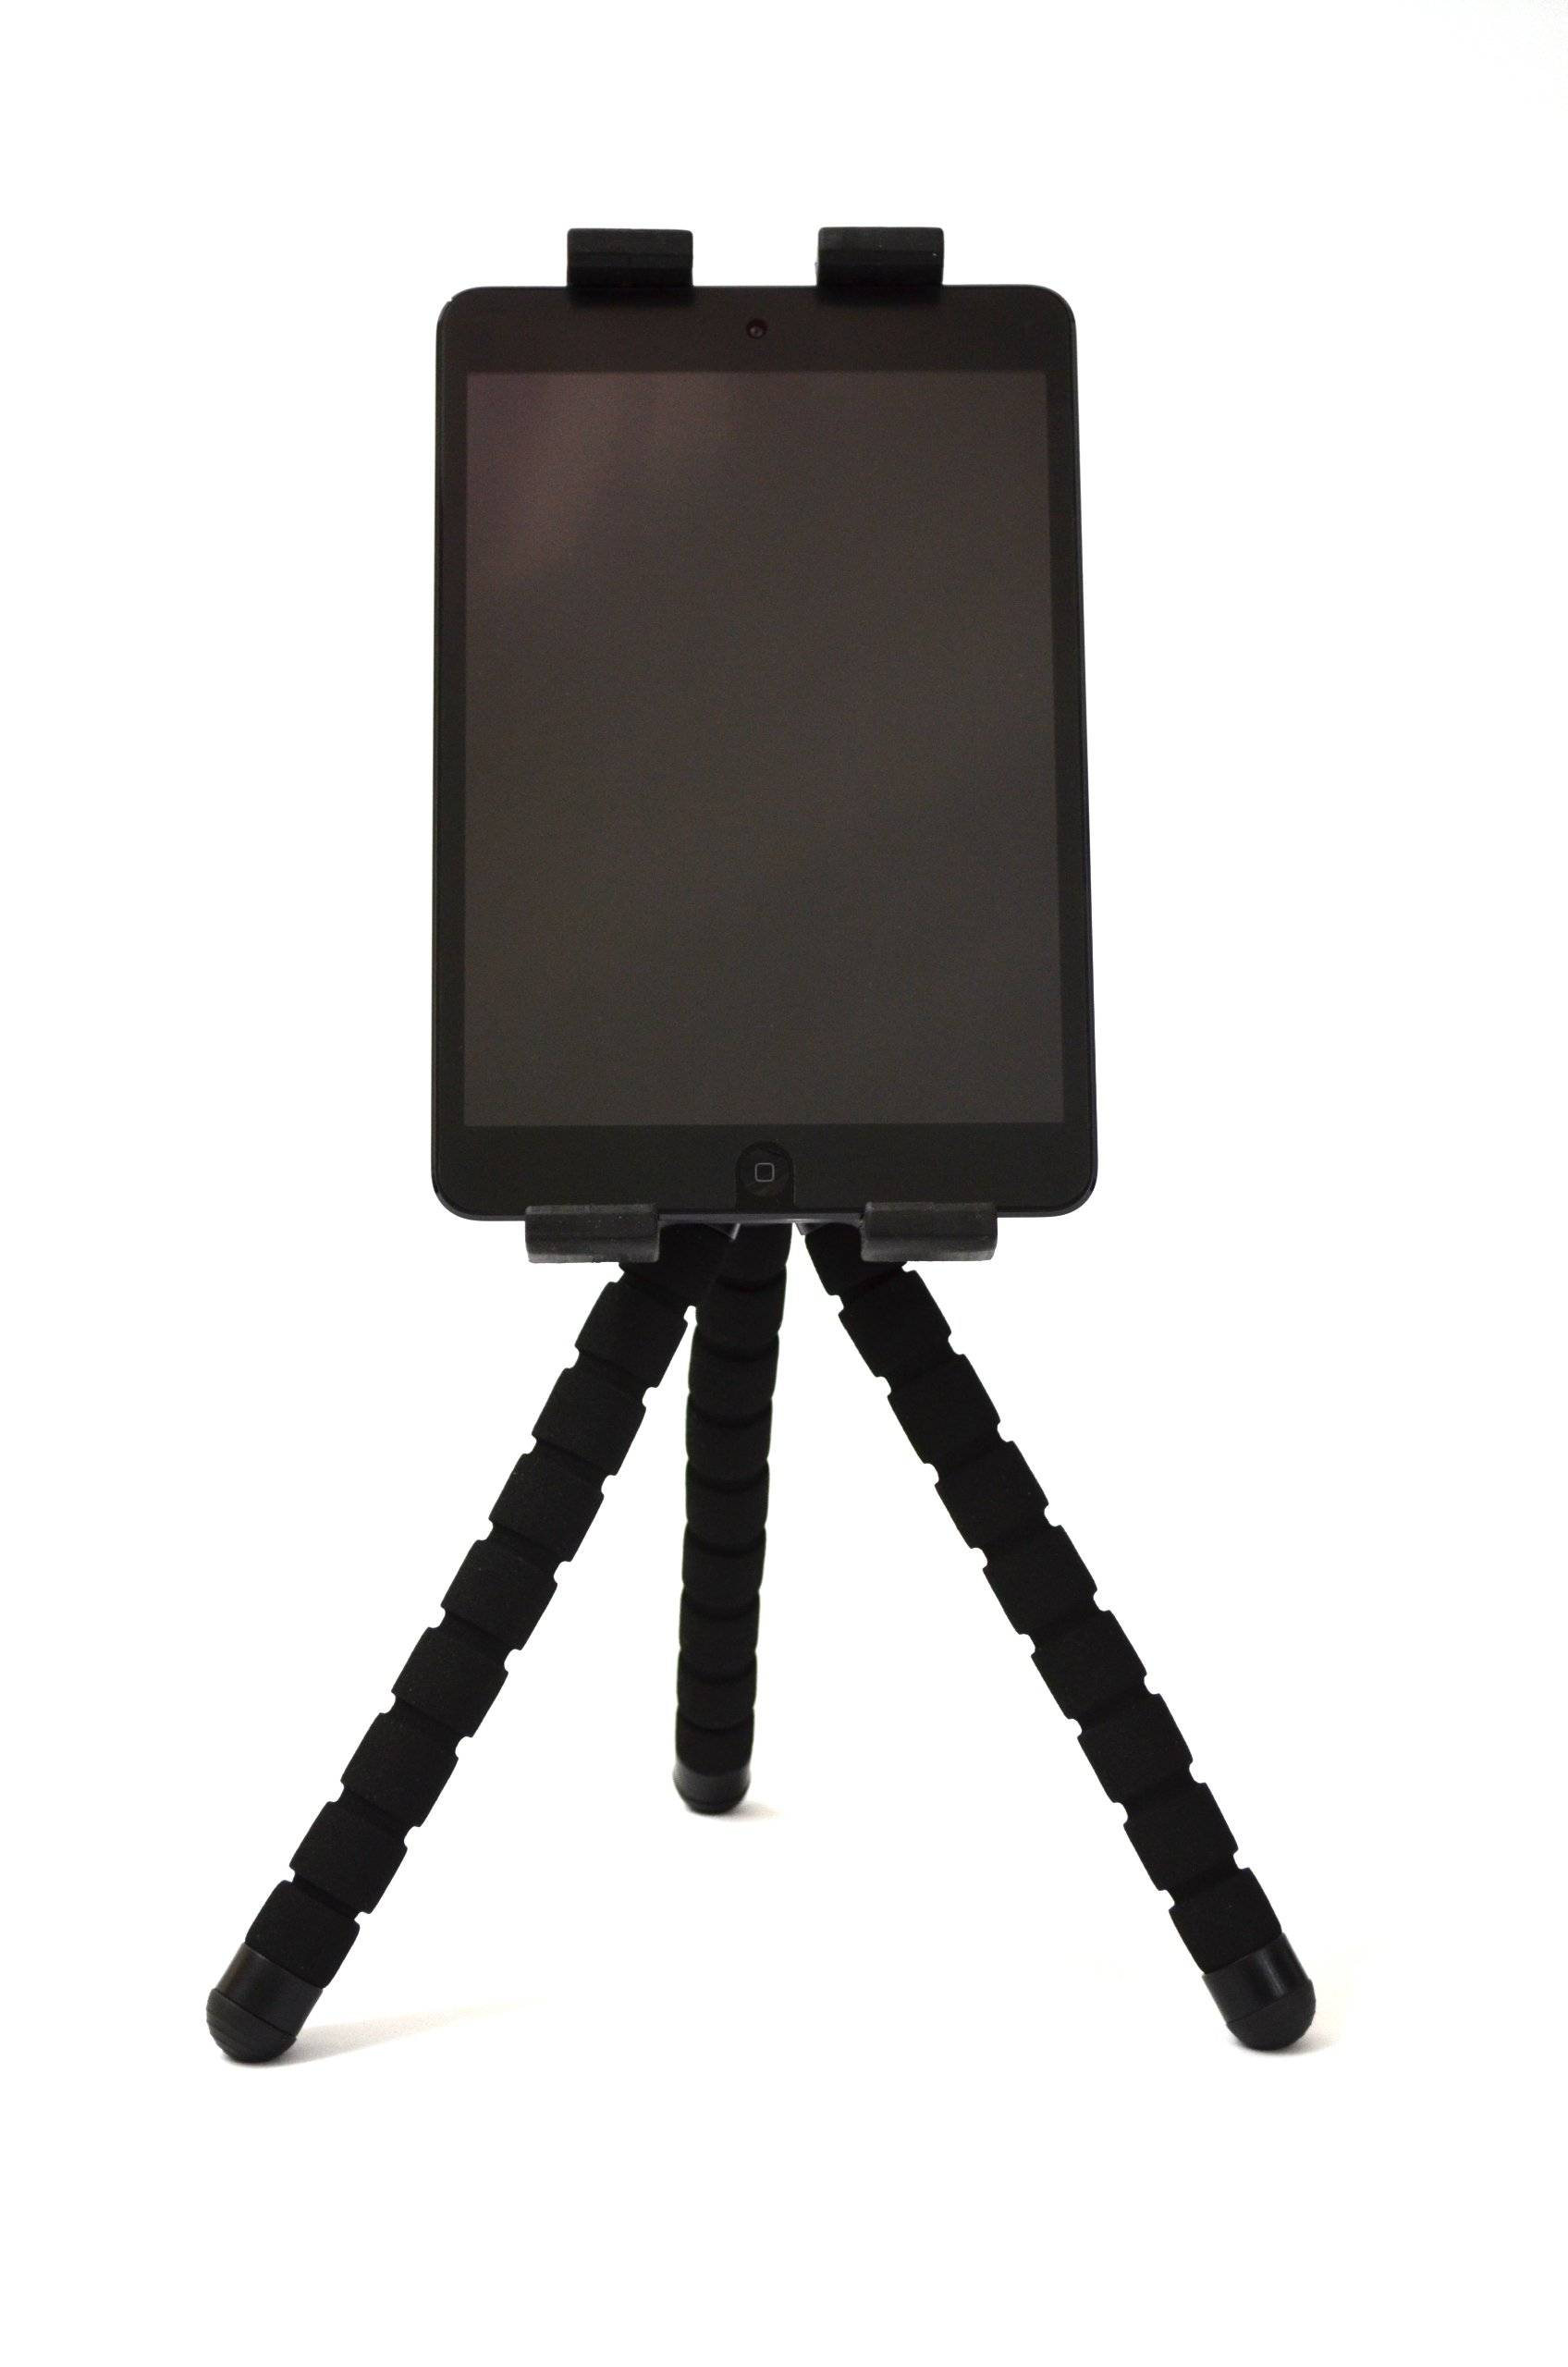 iStabilizer tabFlex - Universal Flexible Leg Tripod for Tablets